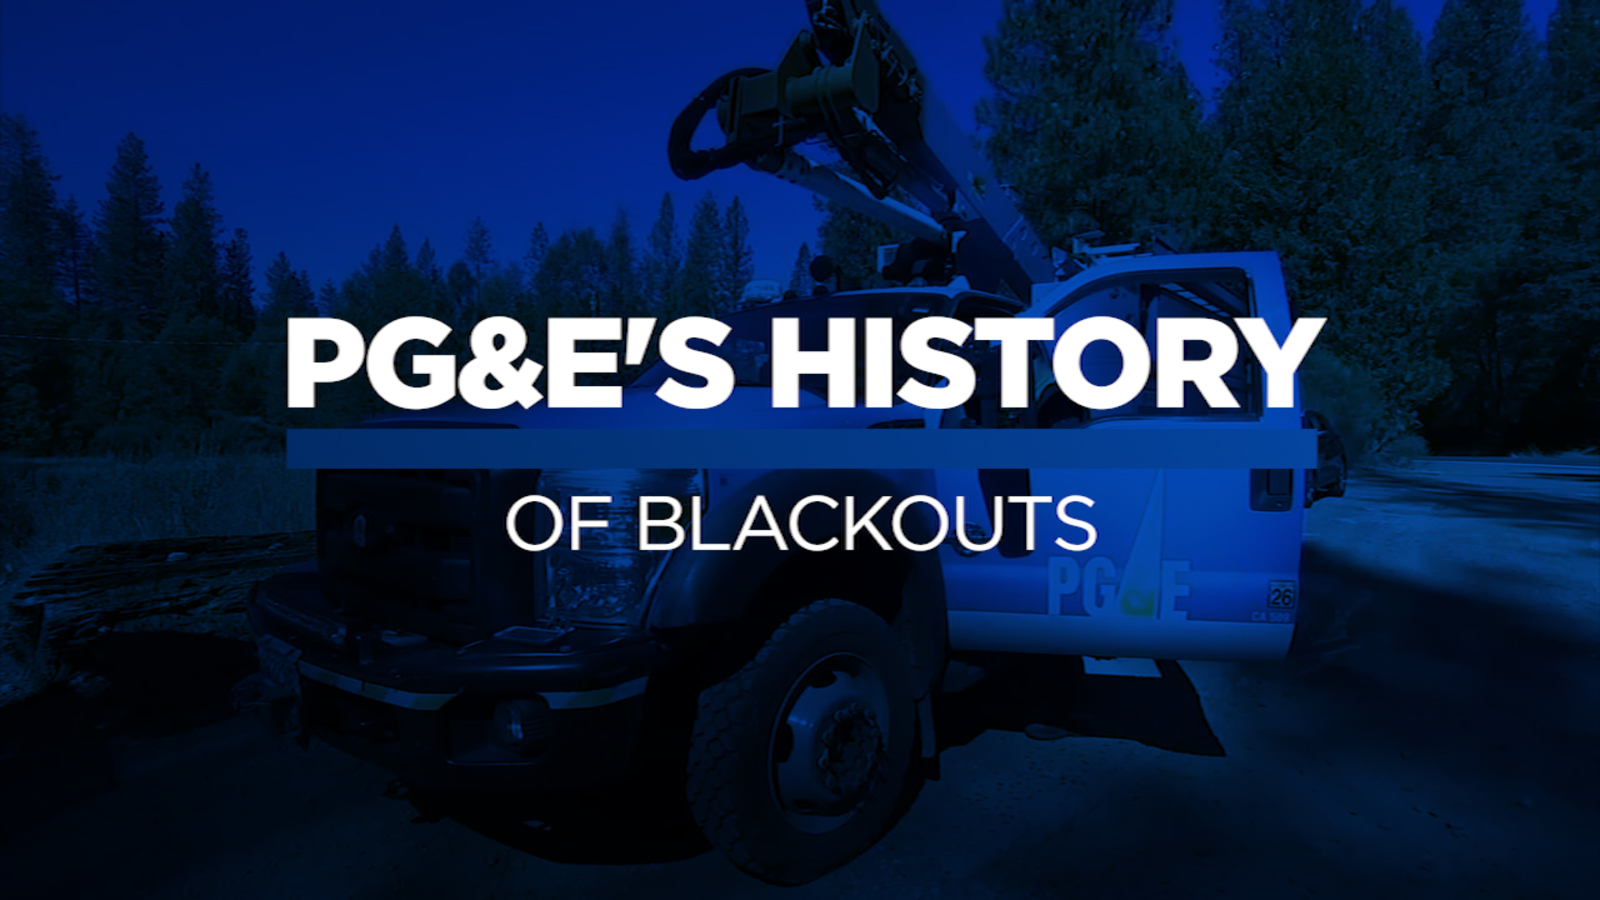 A look back at PG&E's history of blackouts